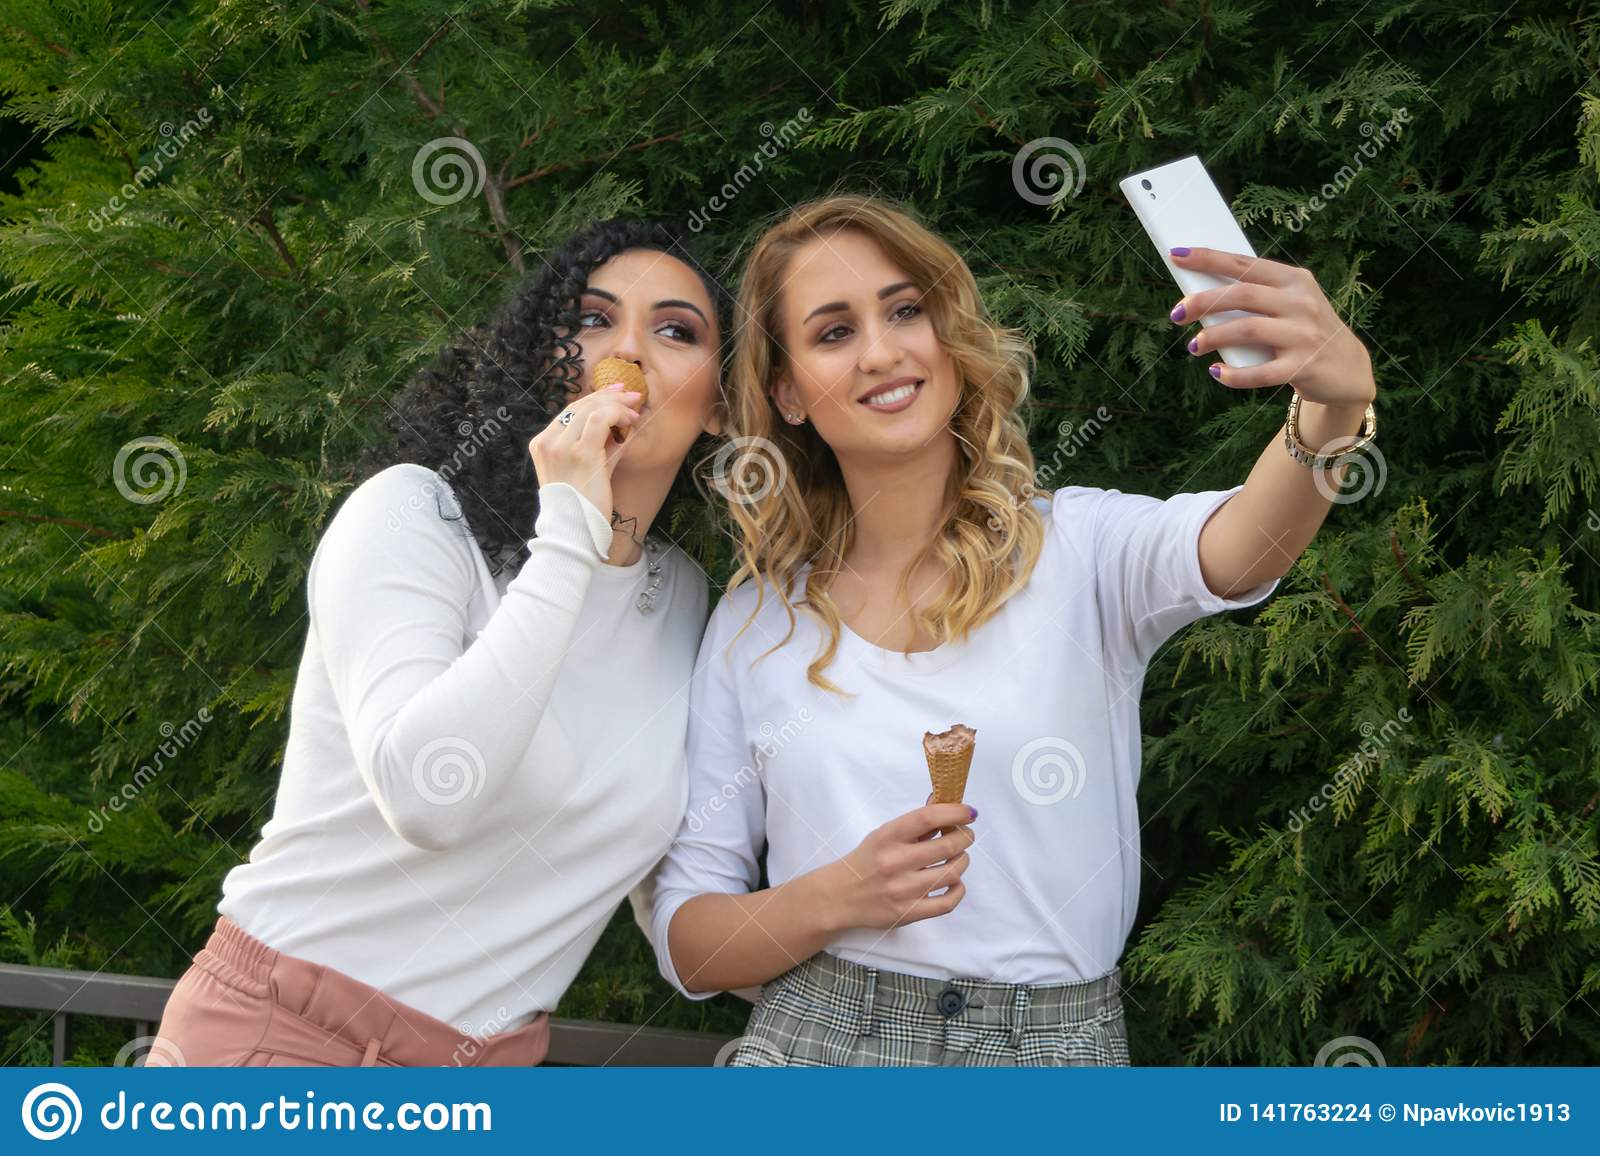 Two girls are taking selfies and eating ice cream